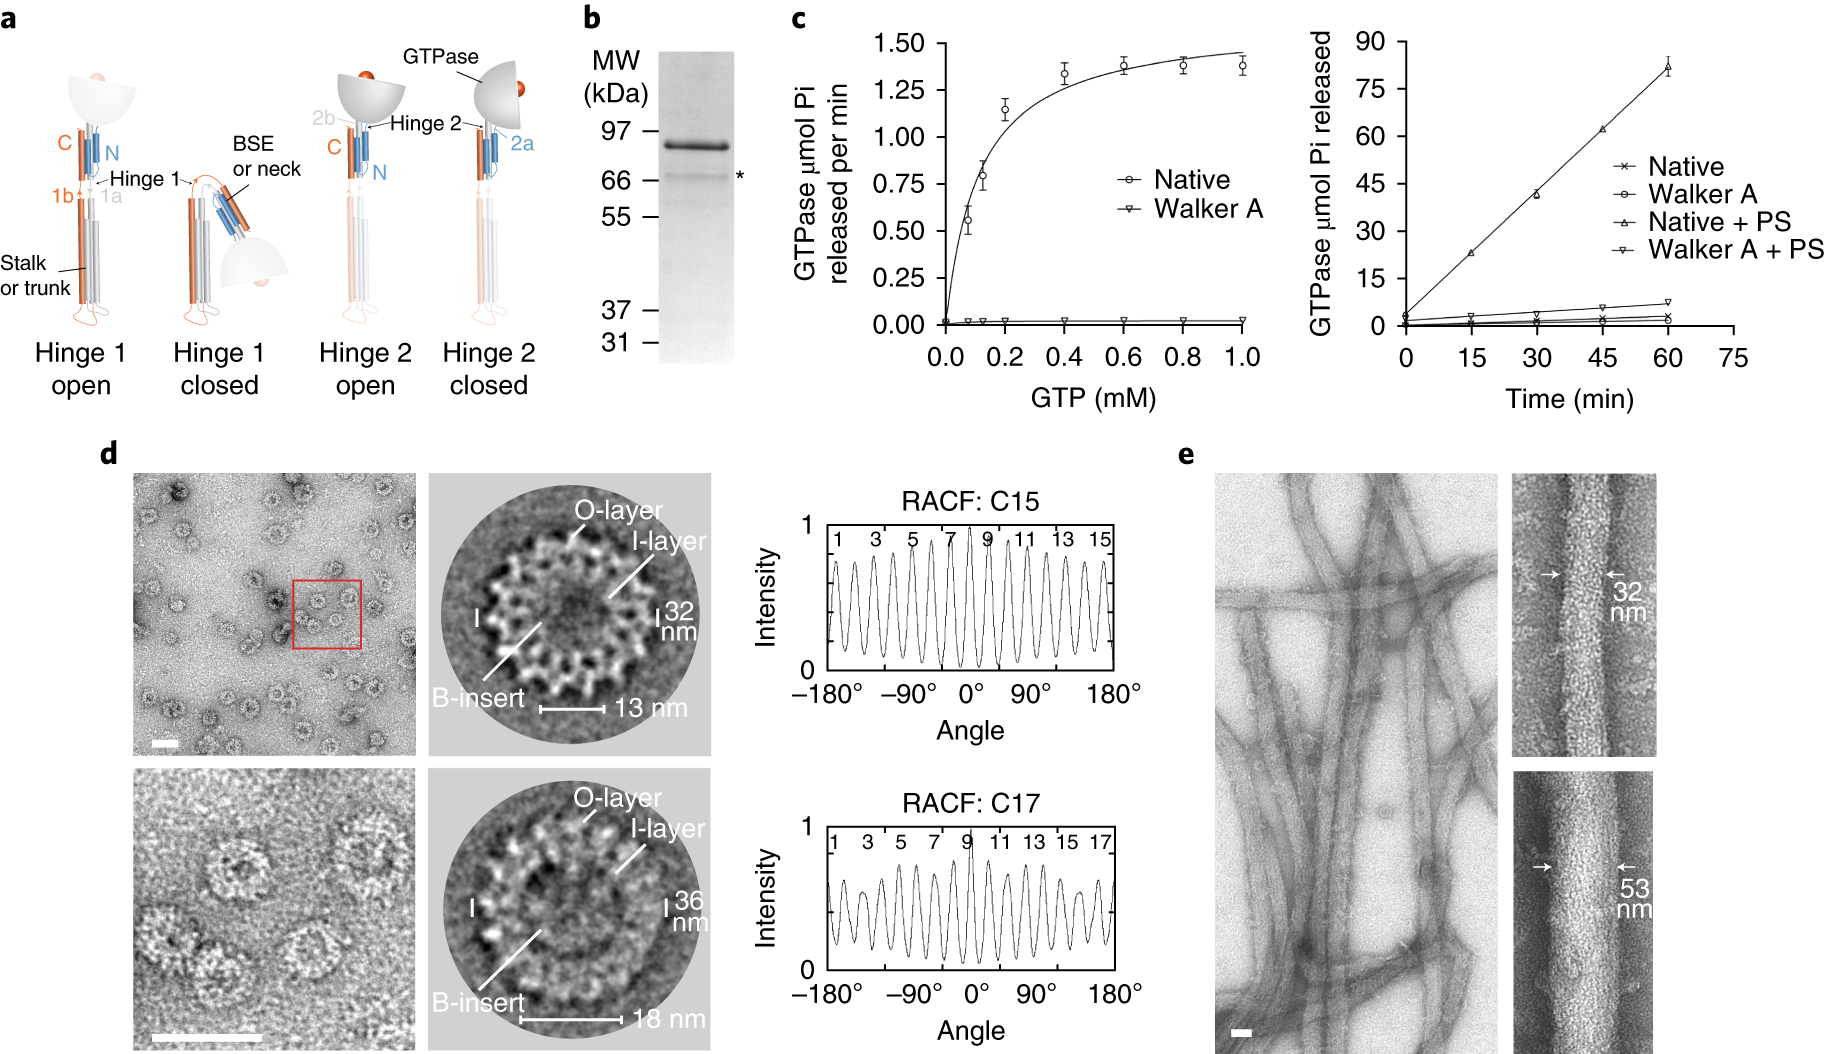 Structure of a mitochondrial fission dynamin in the closed